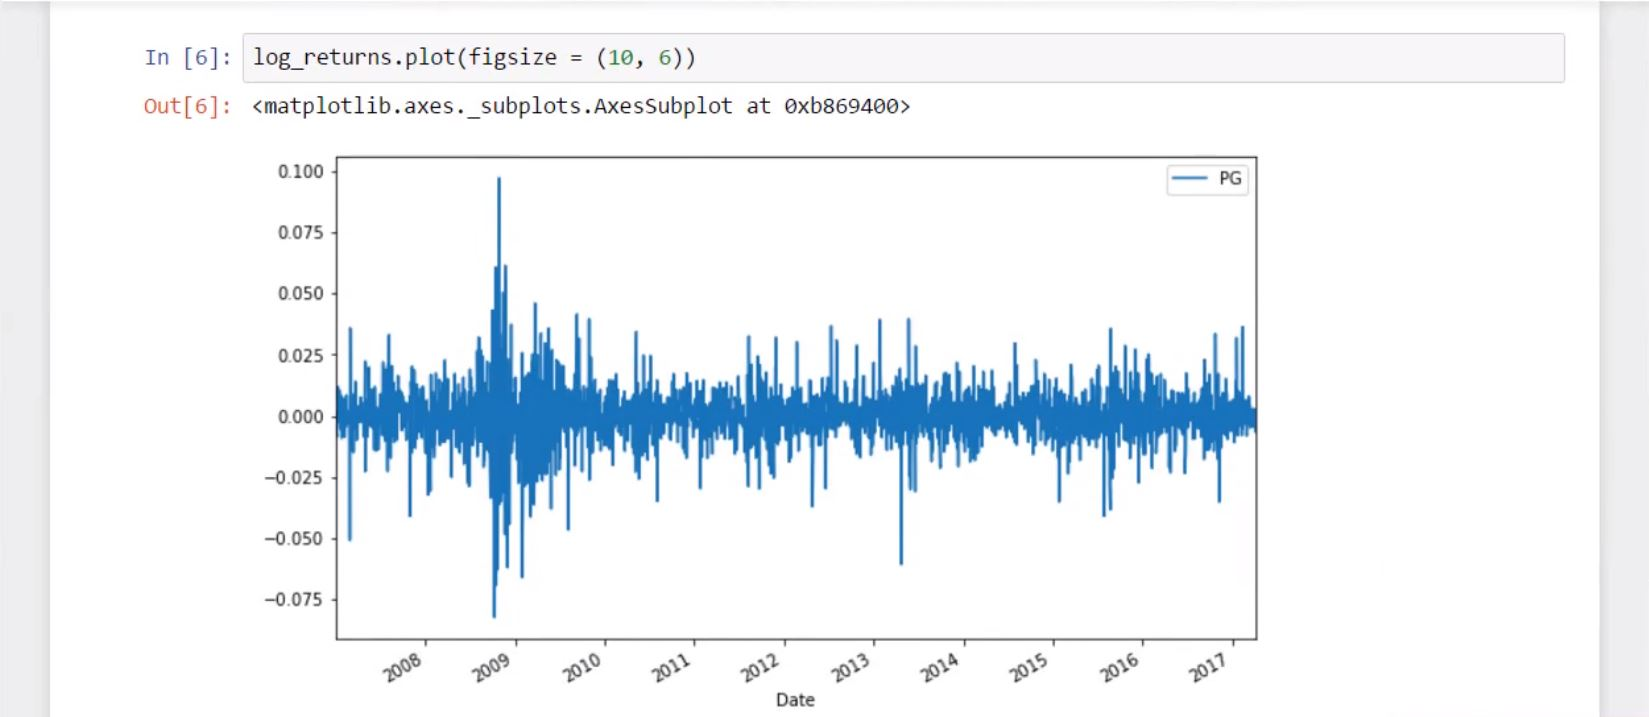 How to apply Monte Carlo simulation to forecast Stock prices